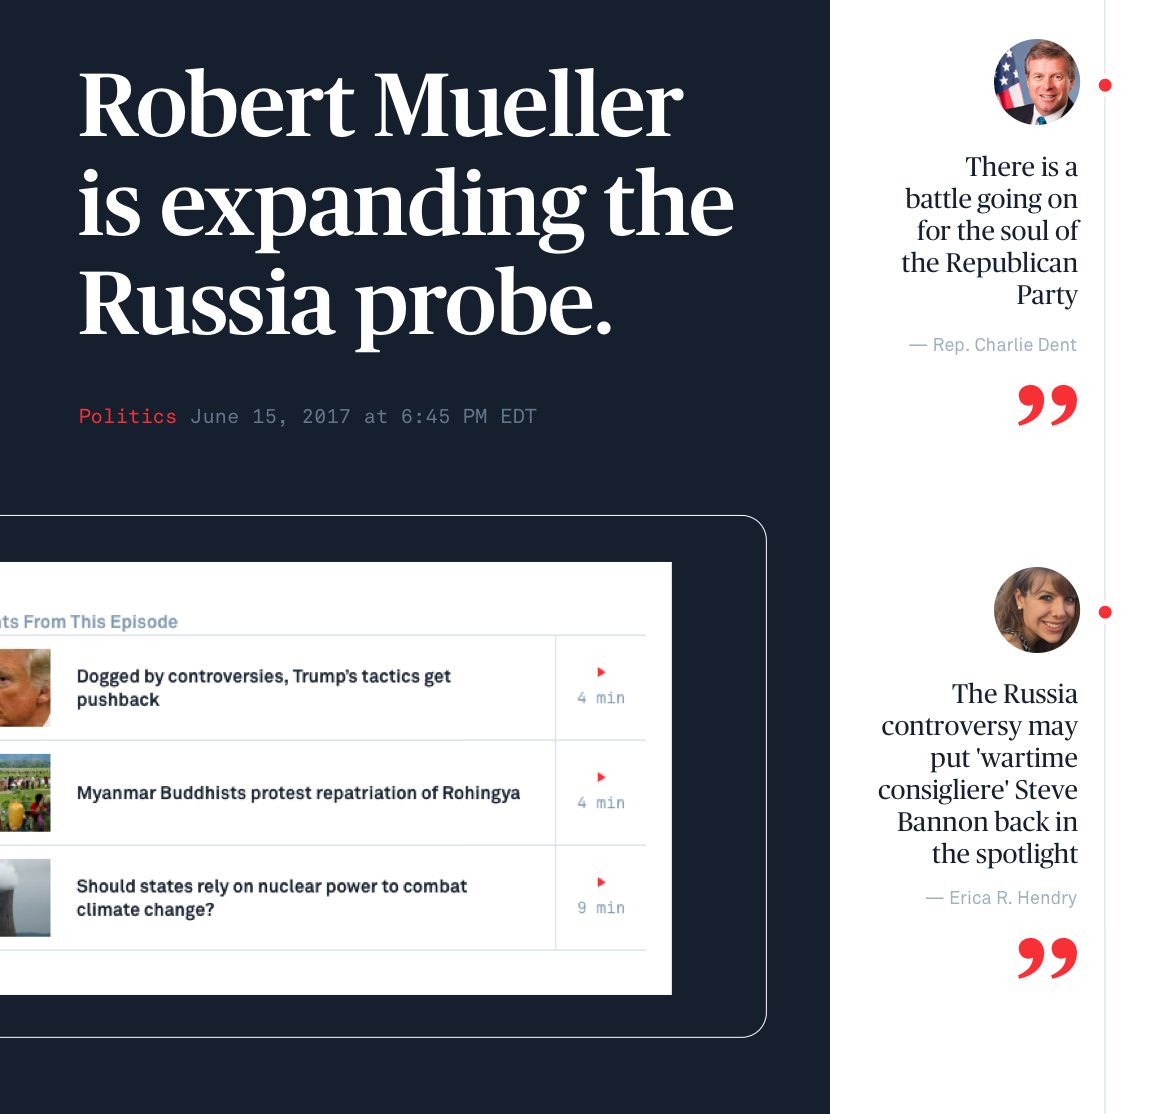 Screenshot from the PBS newshour site that reads, 'Robert Mueller is expanding the Russia probe', and shows a smartphone view of episode segments.